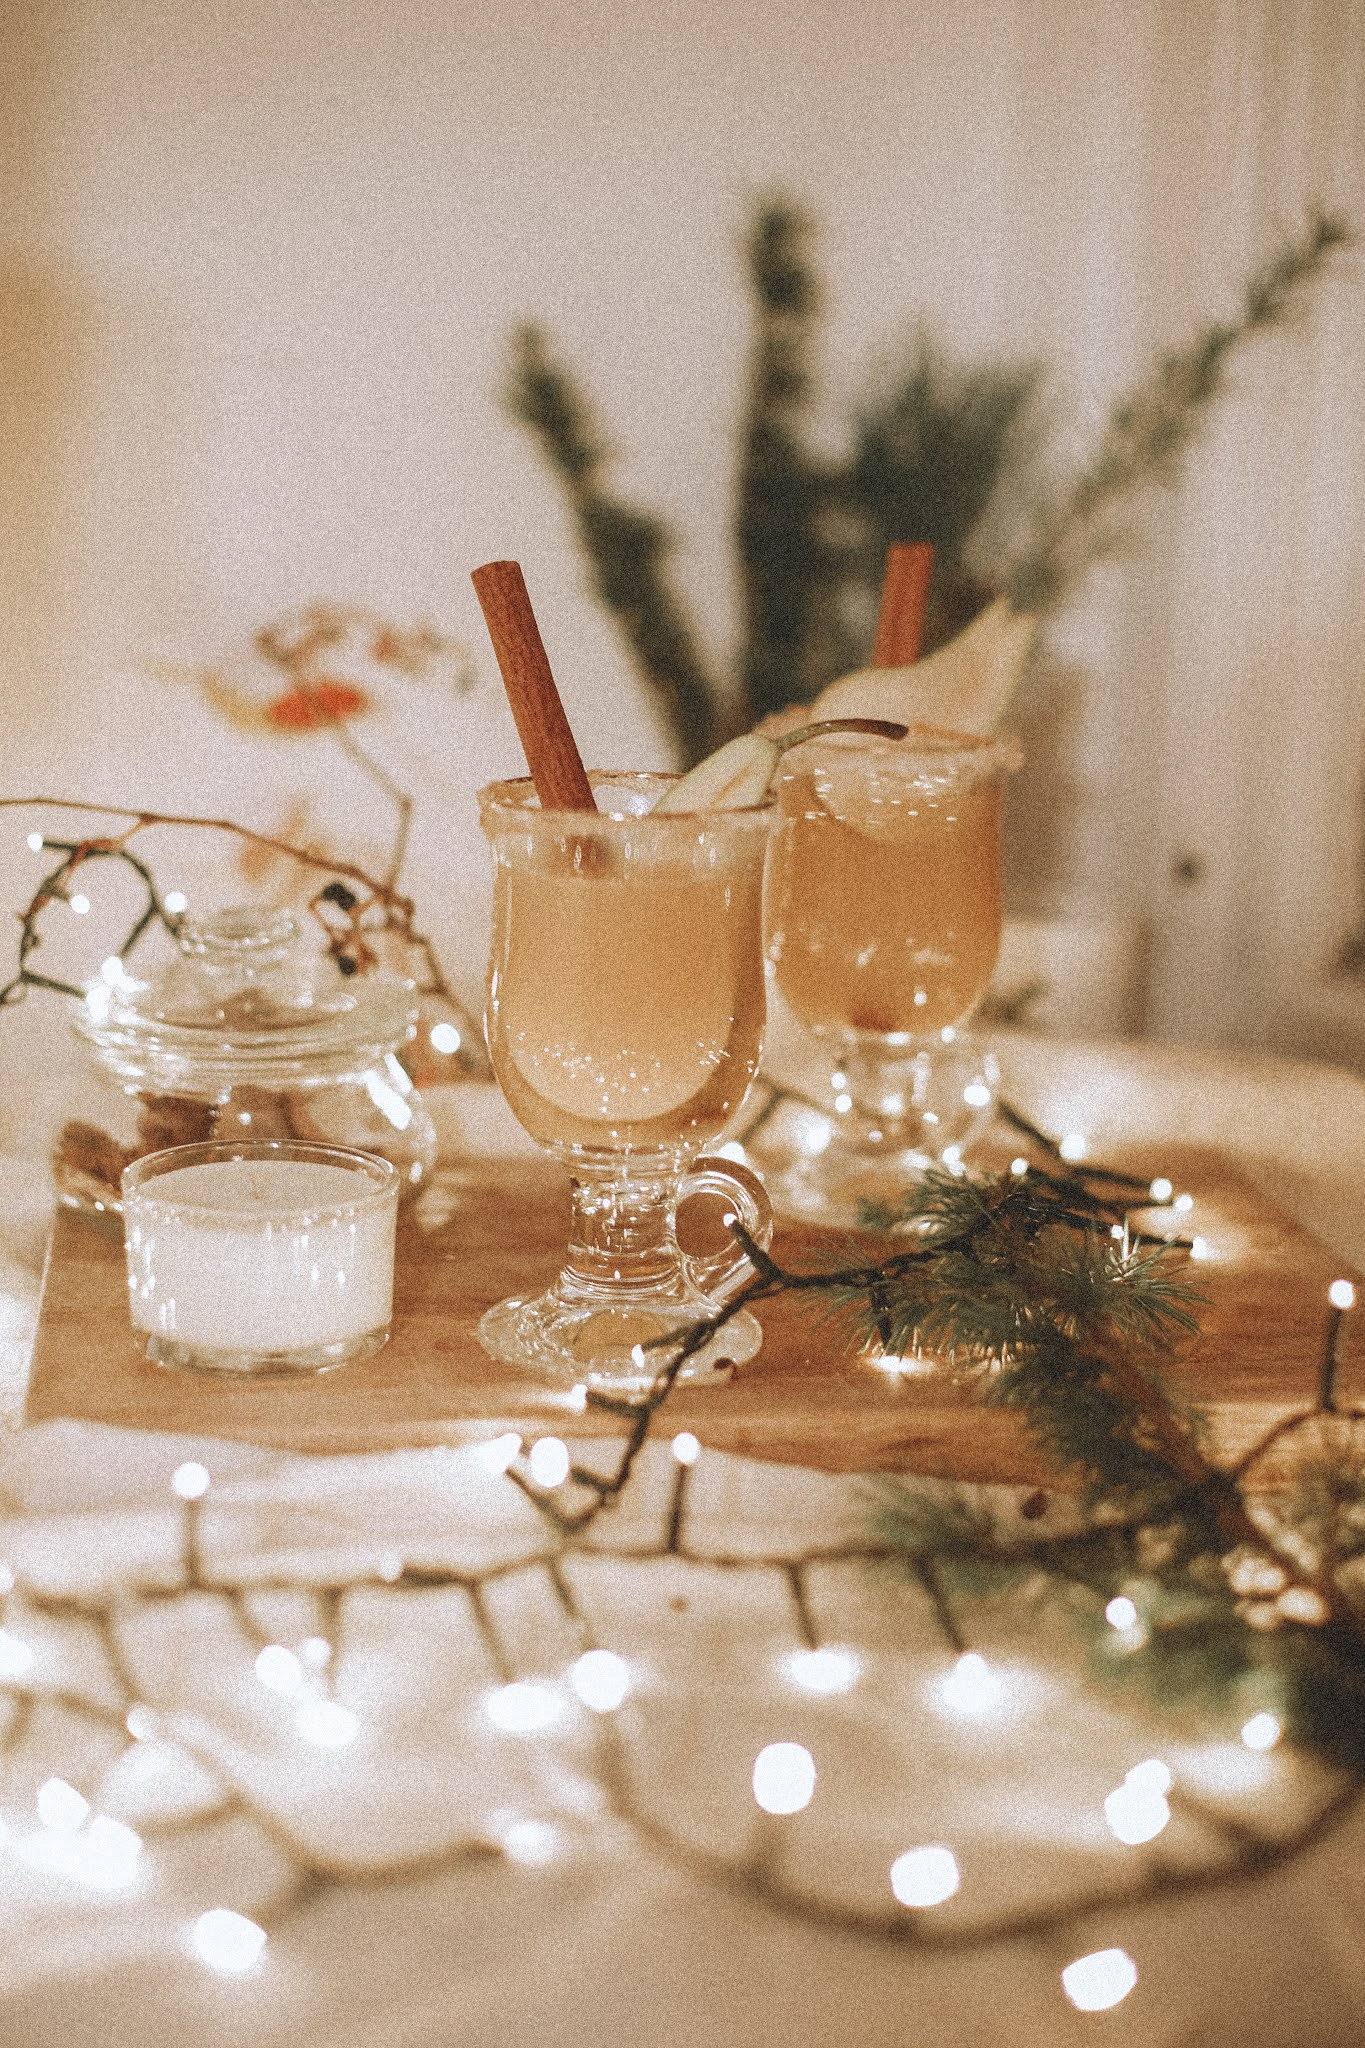 Rêveuse Recipe: A Cosy Winter Drink - Cinnamon Apple and Pear